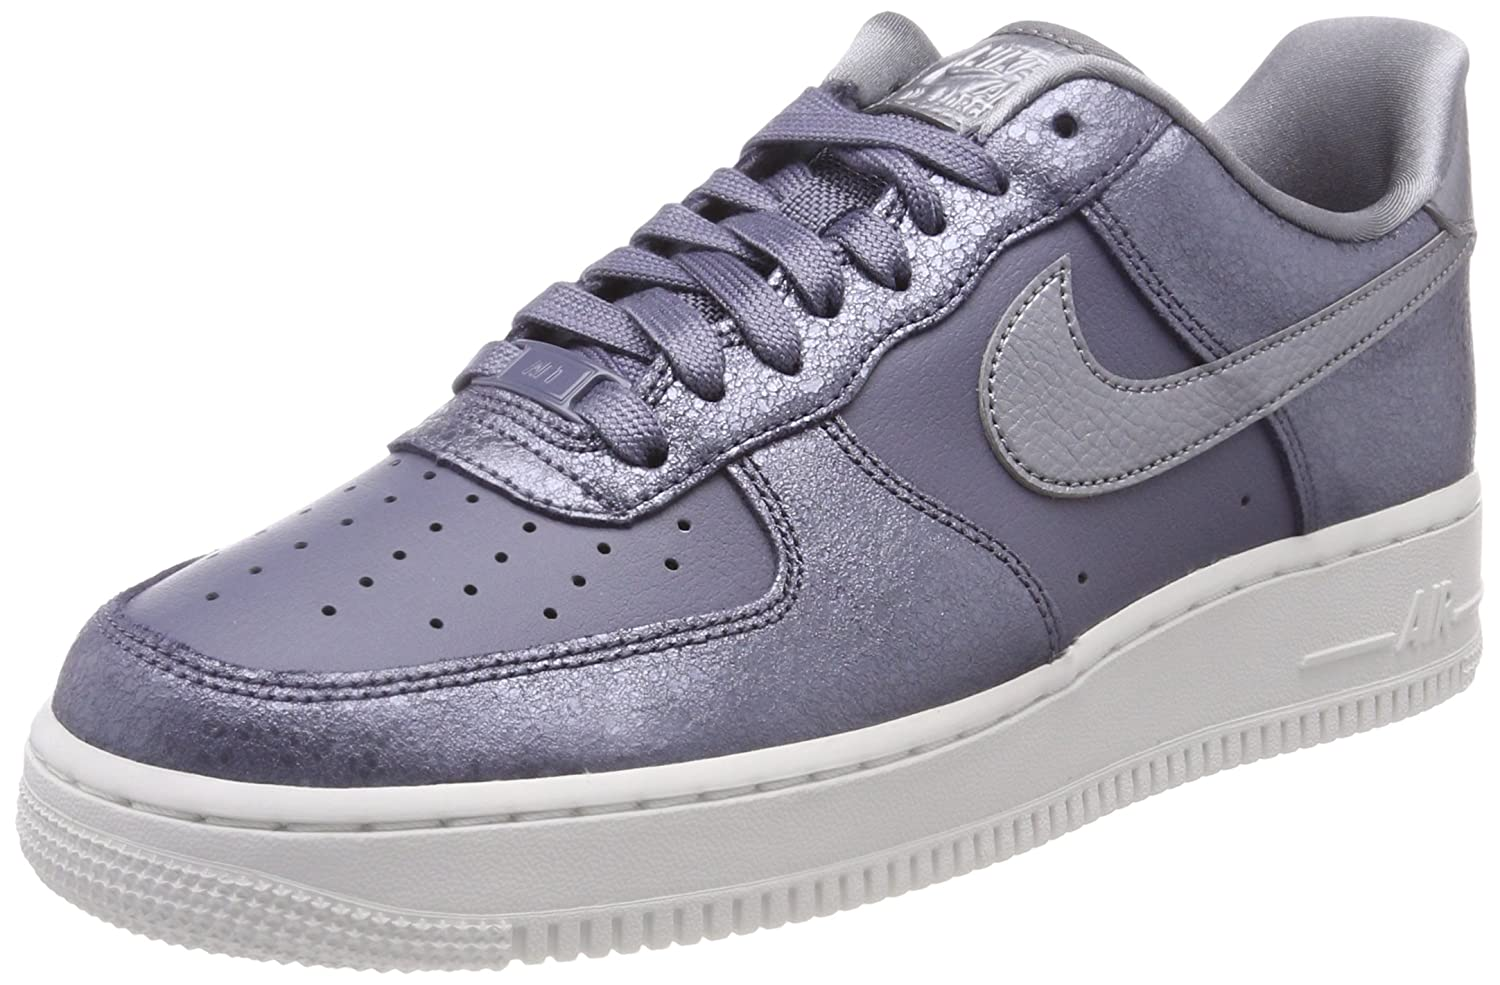 Nike Air Force 1 07 SE Premium Donna Grigio Sneakers Pelle